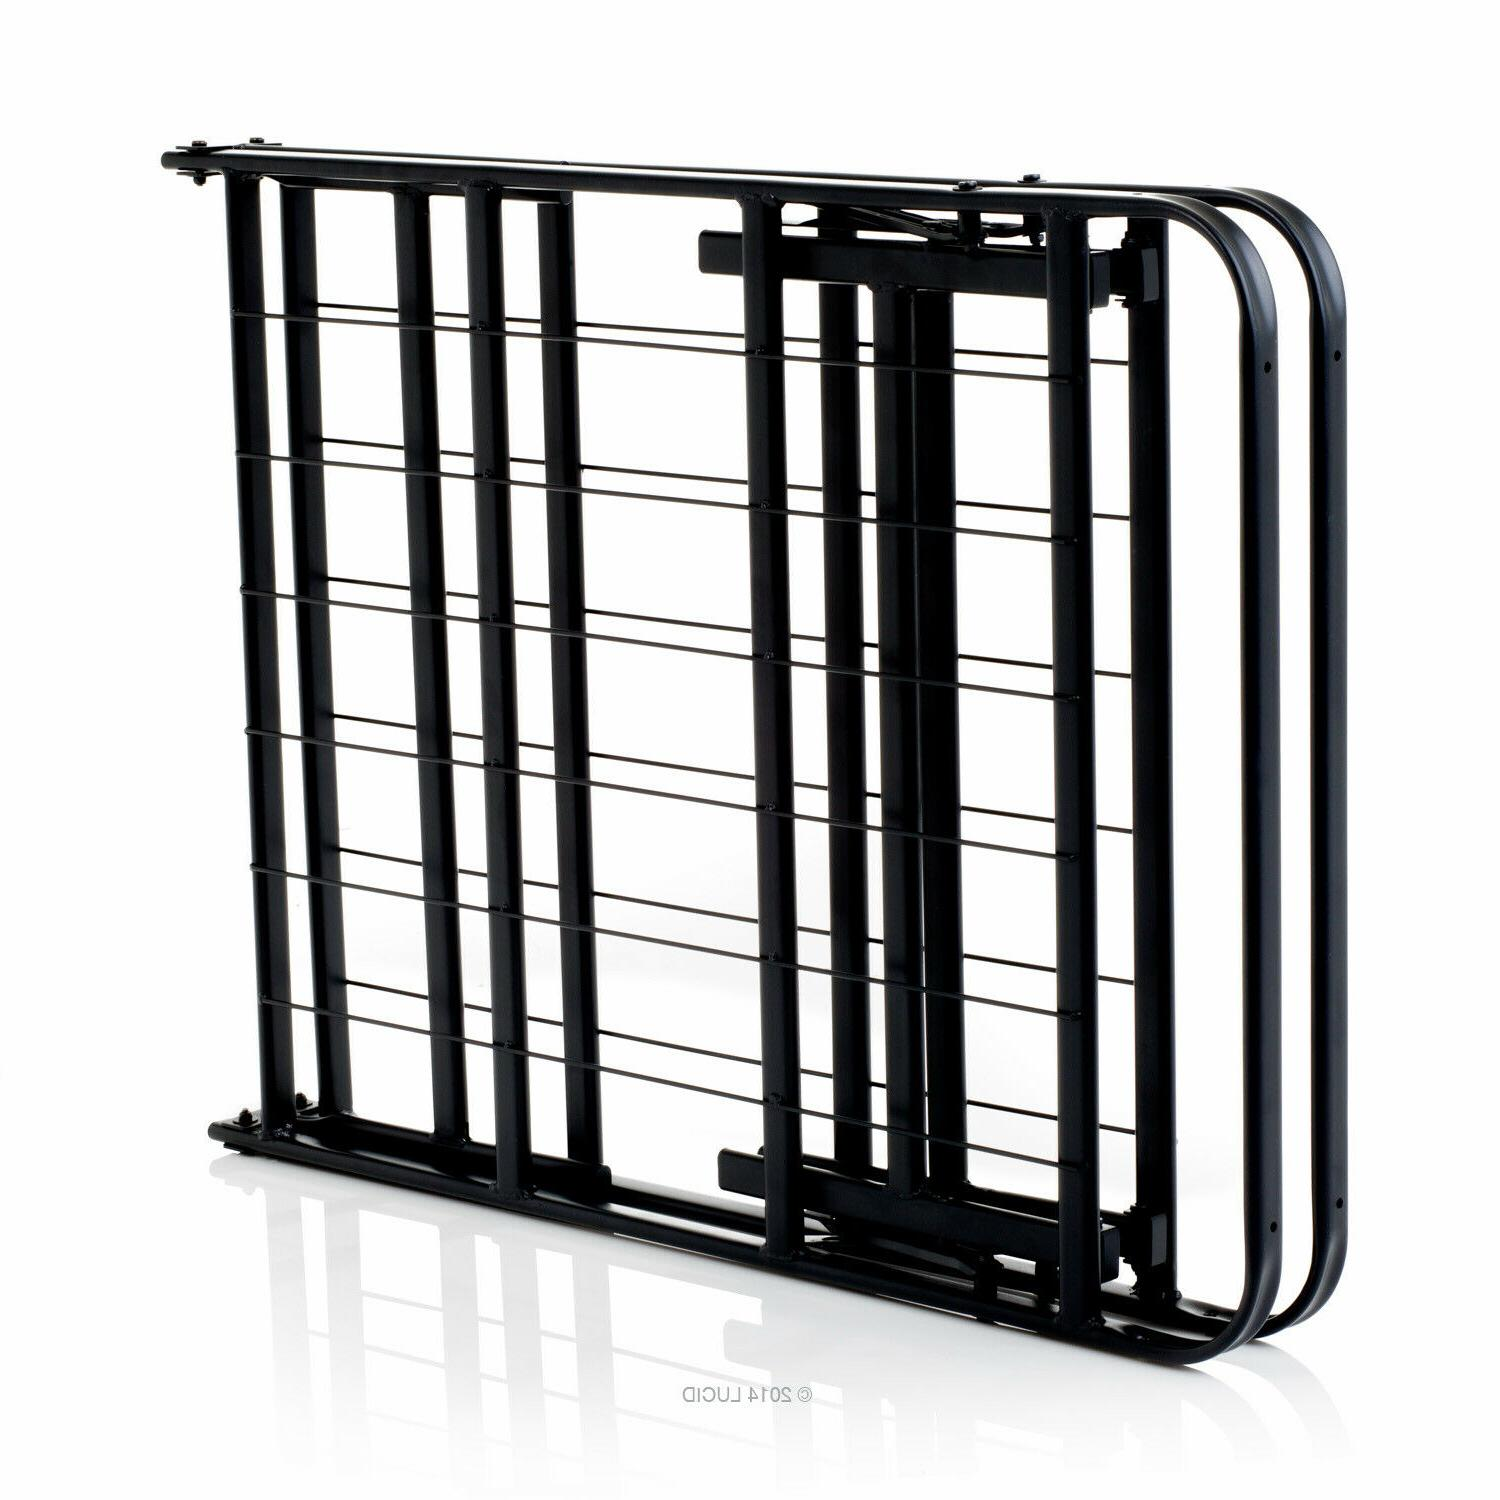 Foldable King Metal Bed Frame and Foundation - King